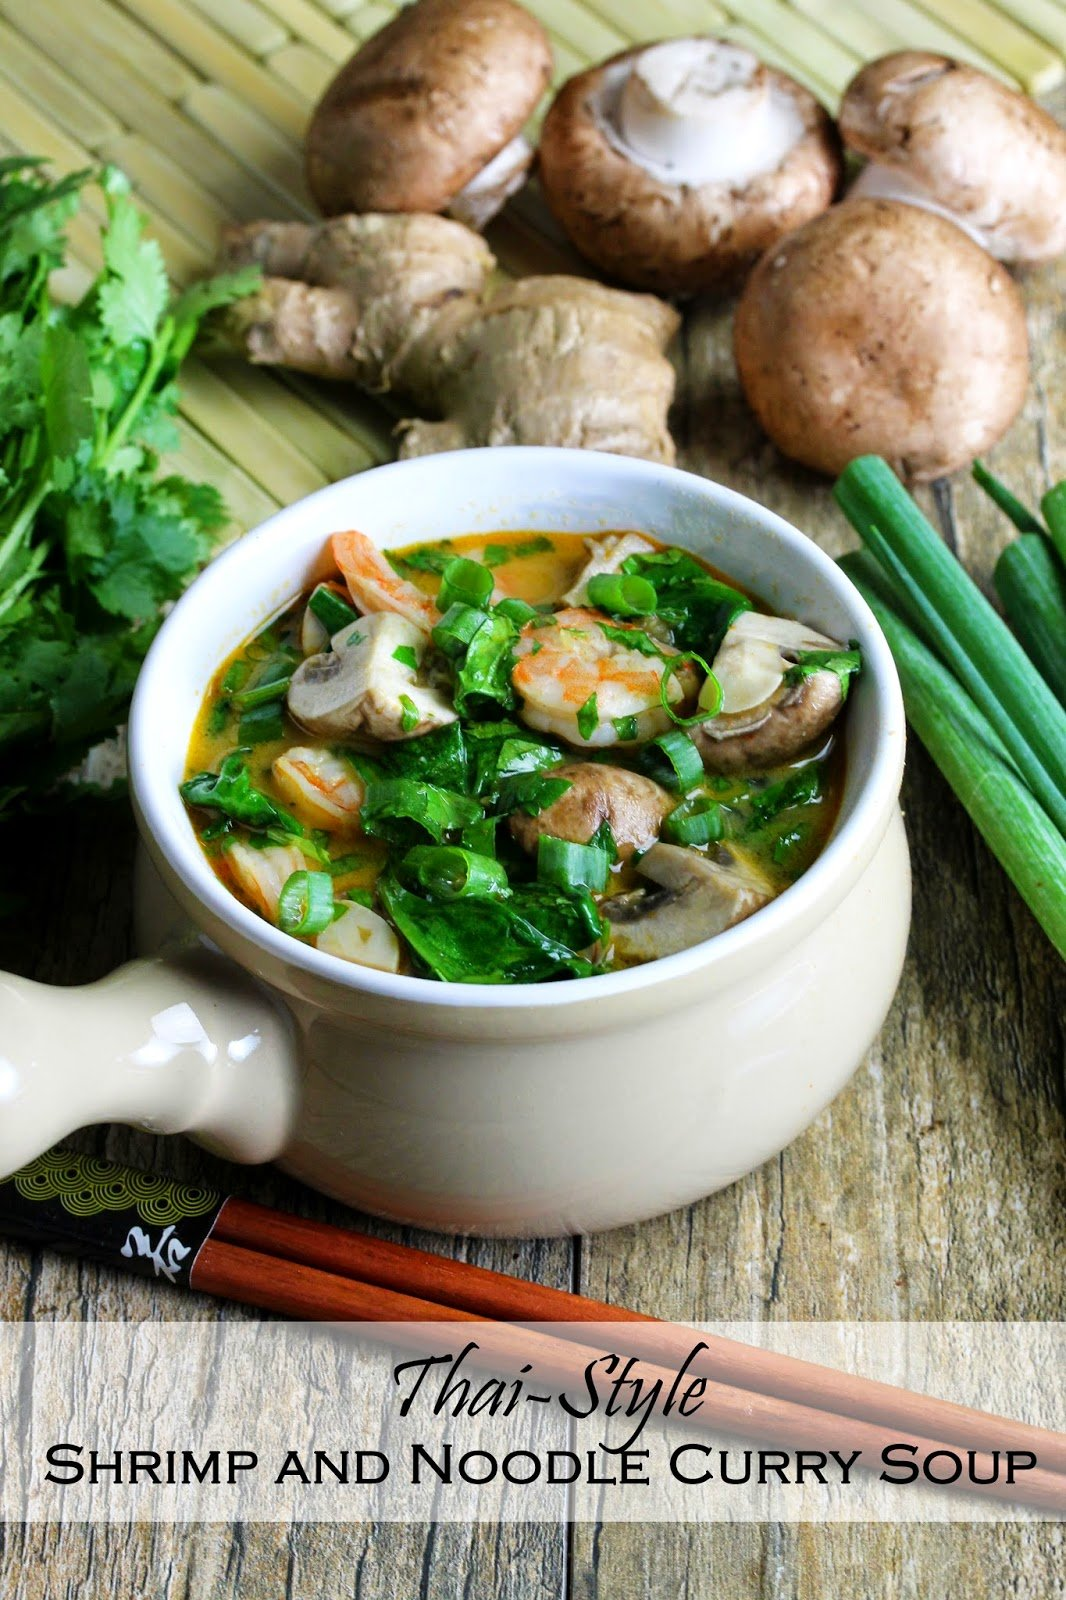 Thai Style Shrimp and Noodle Curry Soup: A coconut based soup with shrimp, mushrooms, spinach and rice noodles, garnished with green onion and cilantro.